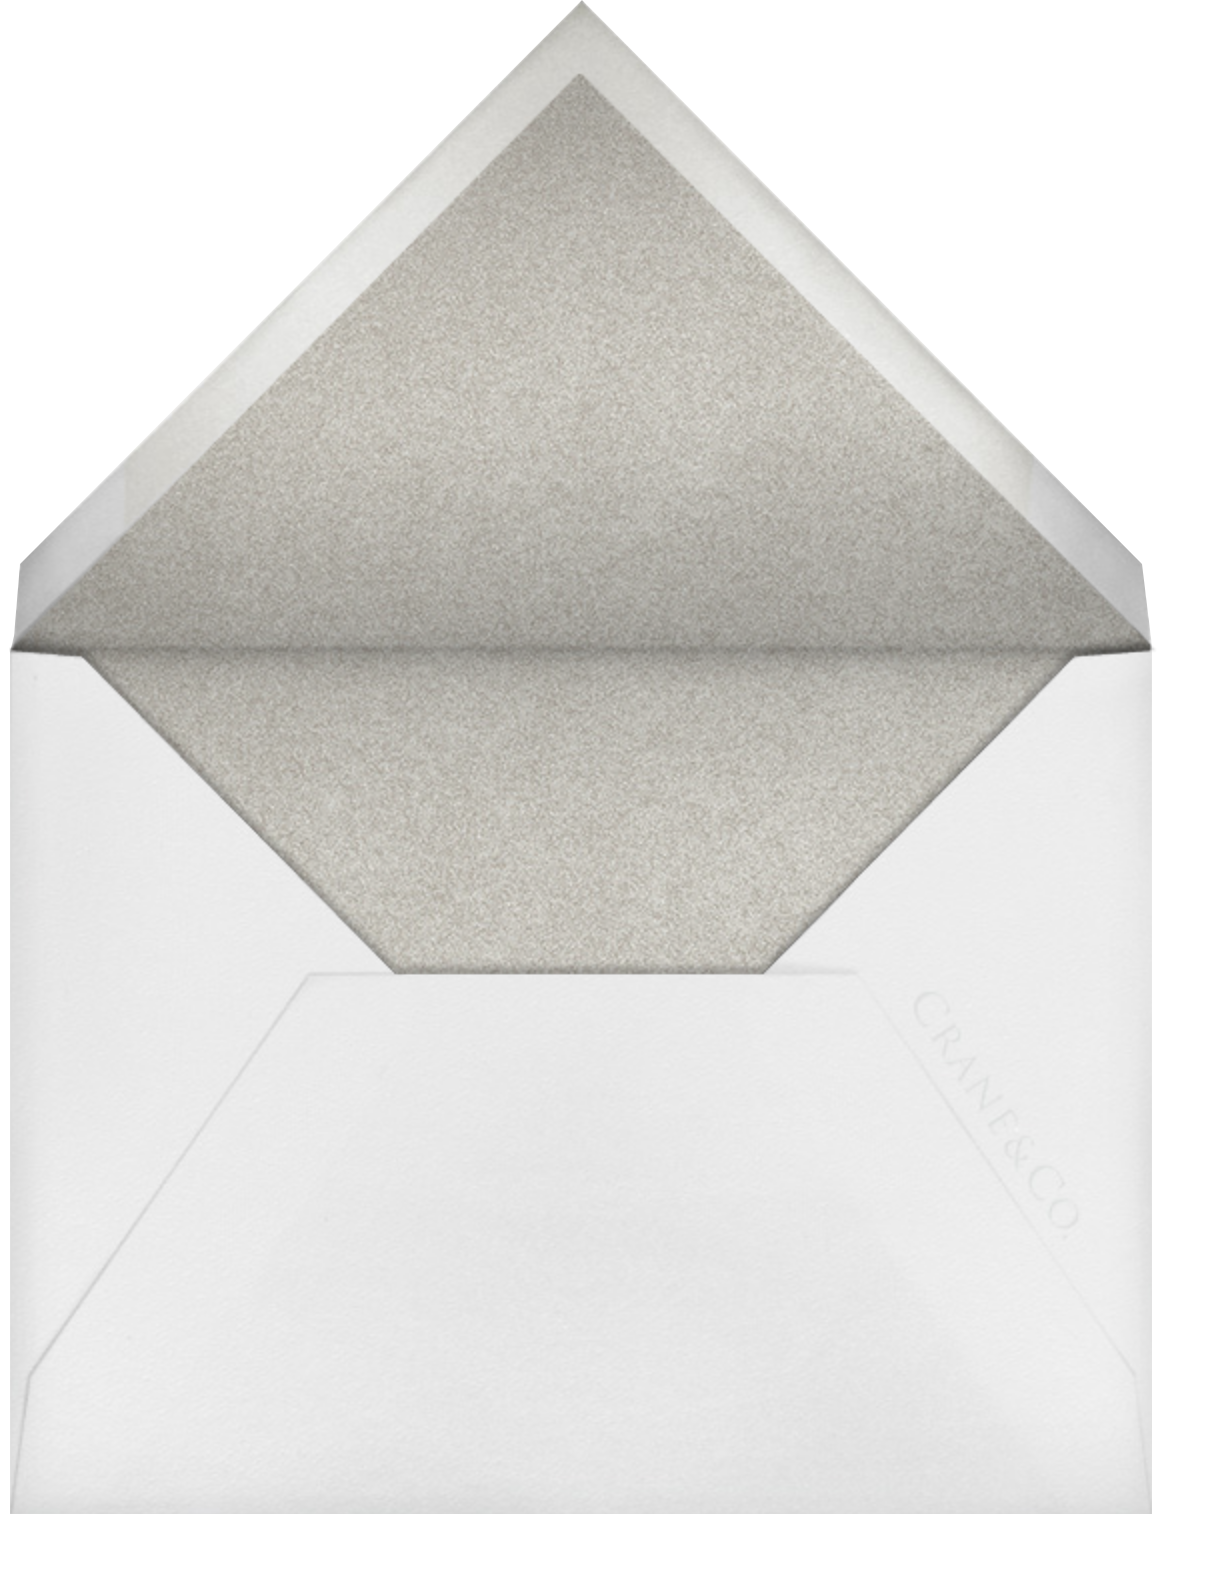 Croquembouche - She (Platinum) - Paperless Post - Engagement party - envelope back